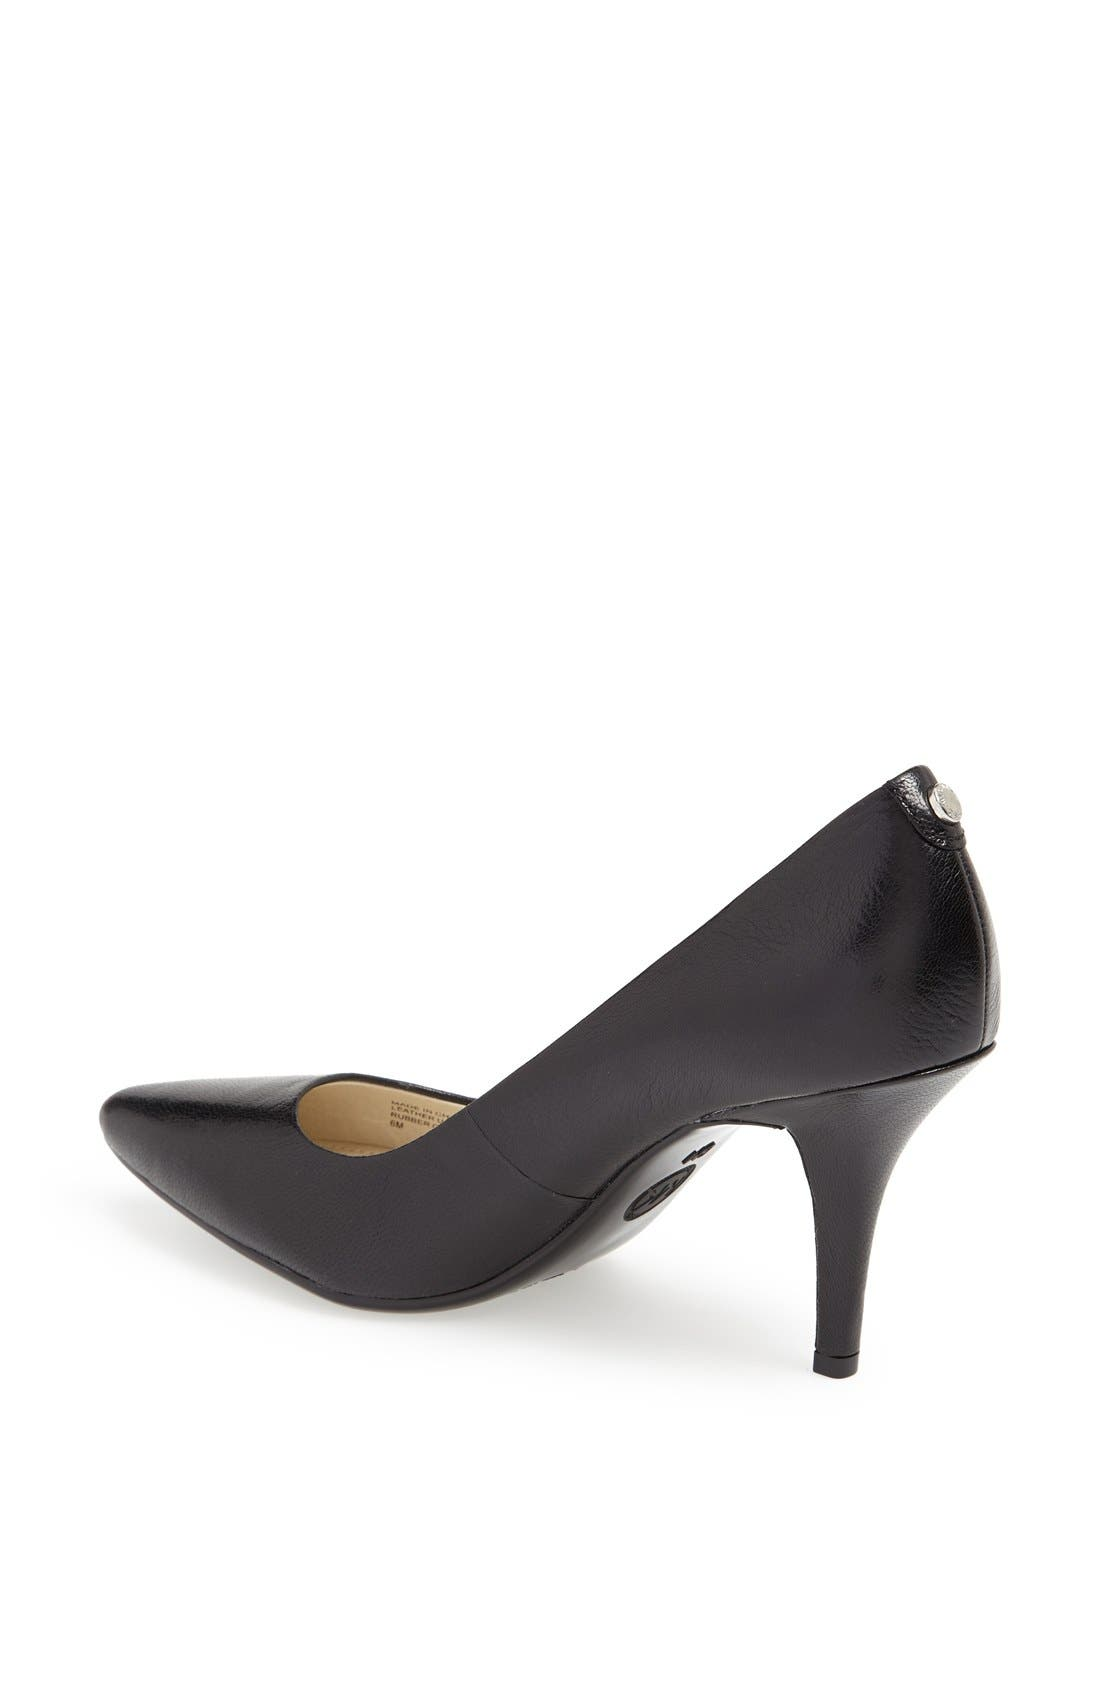 Alternate Image 2  - MICHAEL Michael Kors 'Flex' Pump (Women)